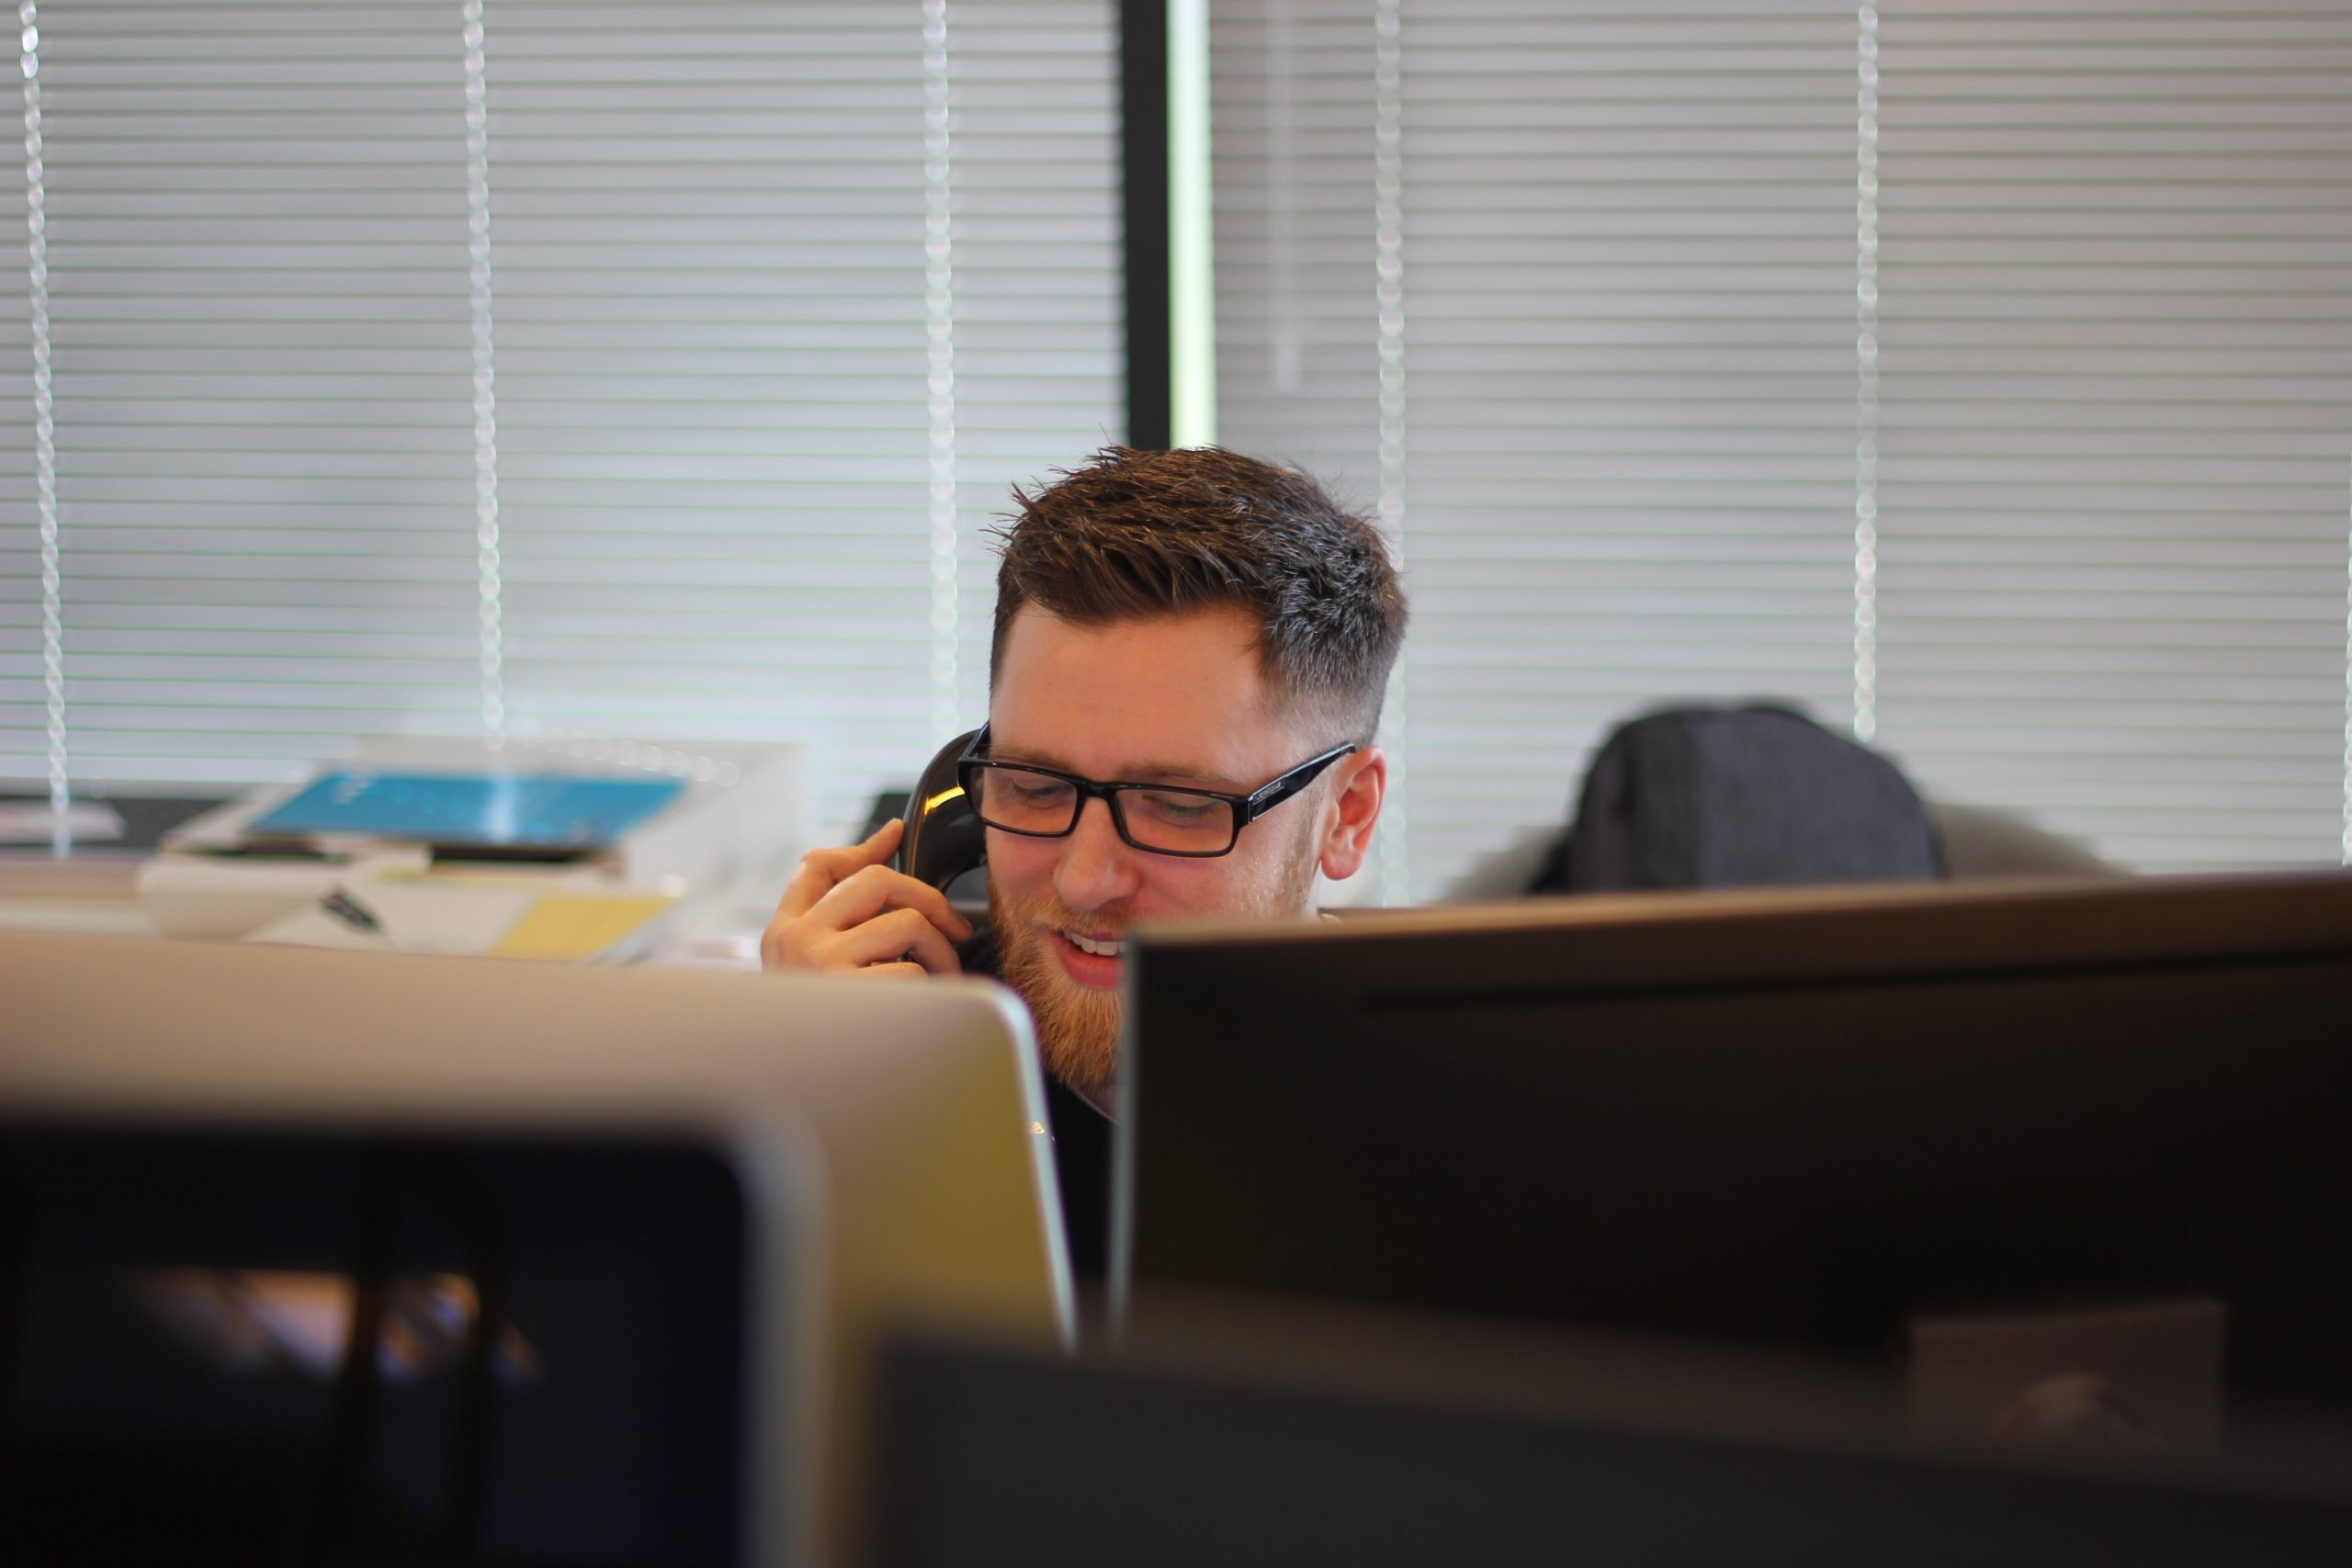 How to Conduct Basic Outbound Telemarketing for Start-Ups – Our Guide